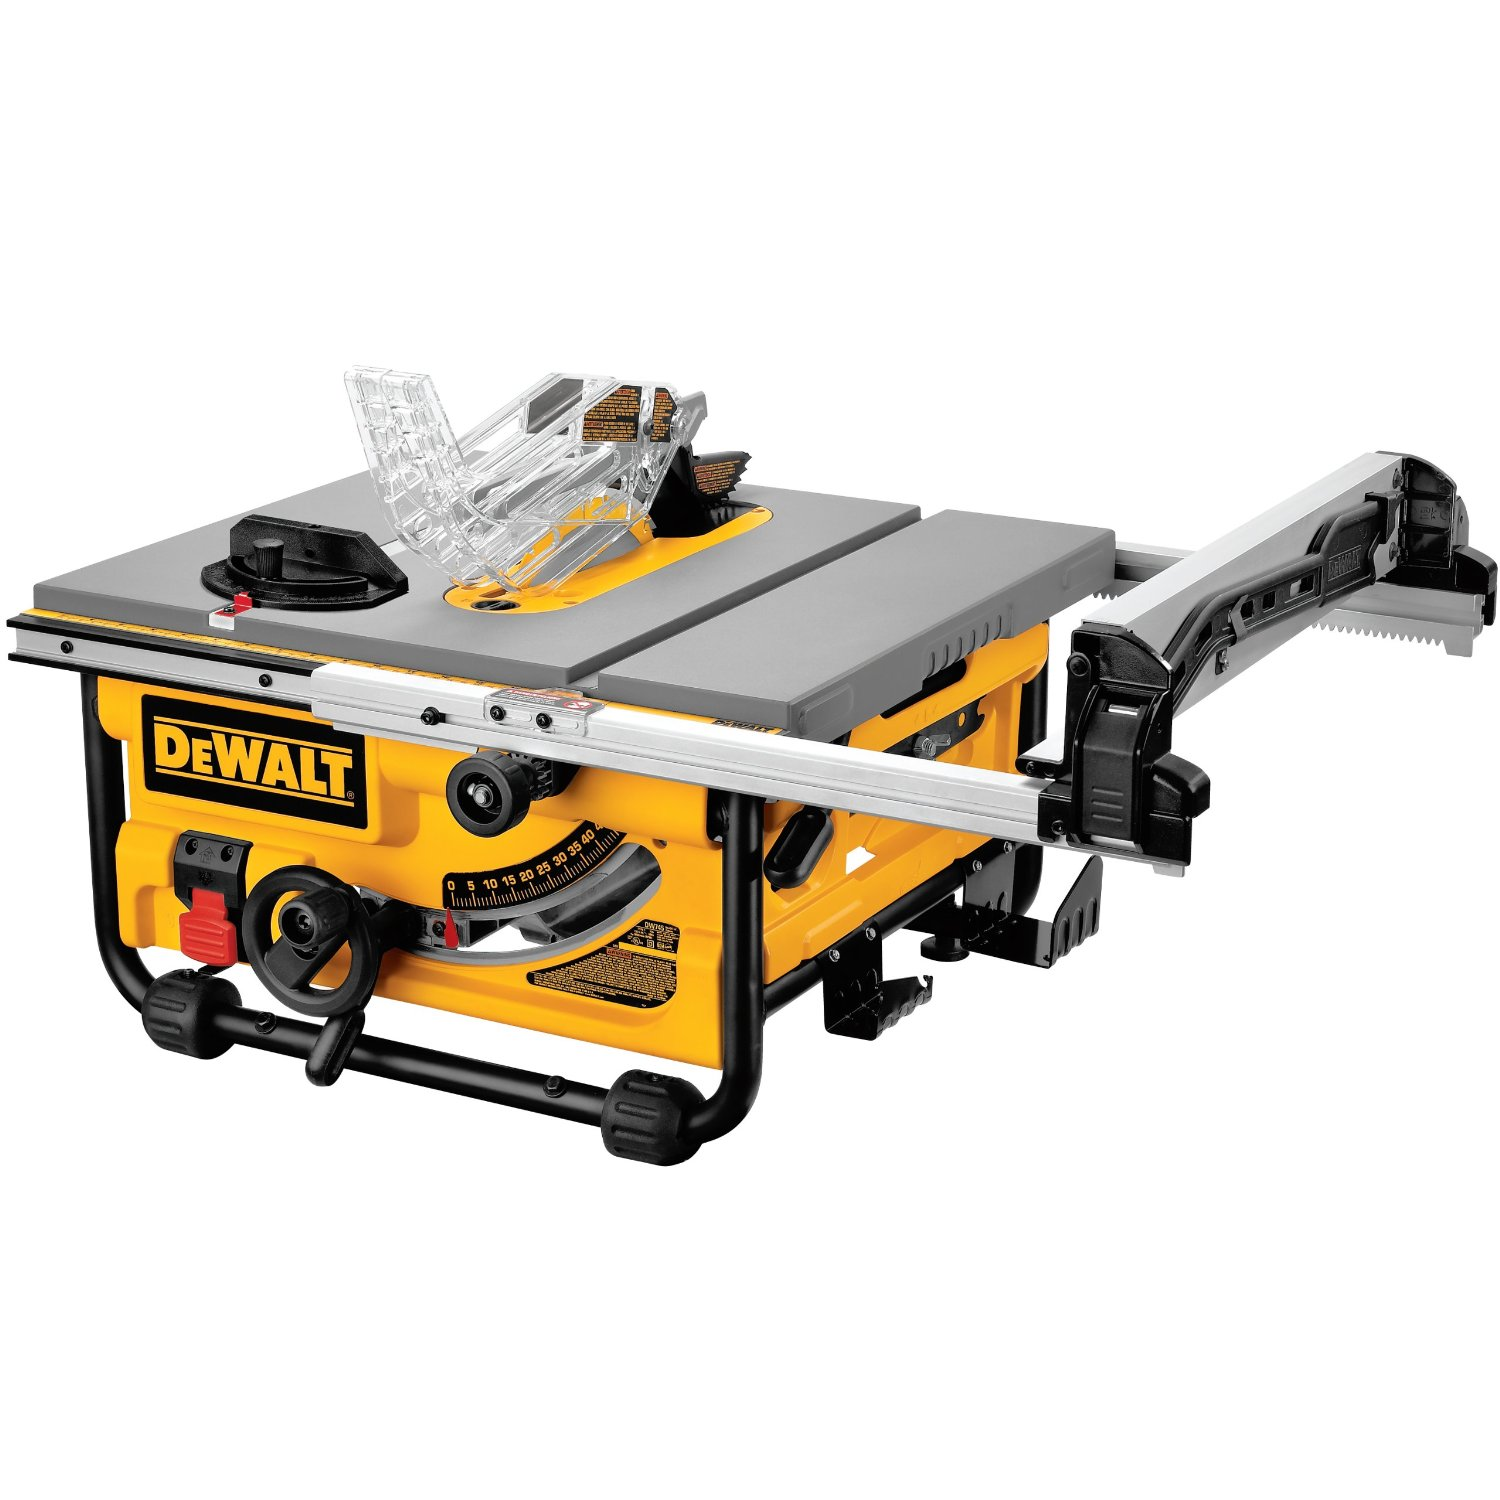 "Dewalt 10"" Compact Jobsite Table Saw"